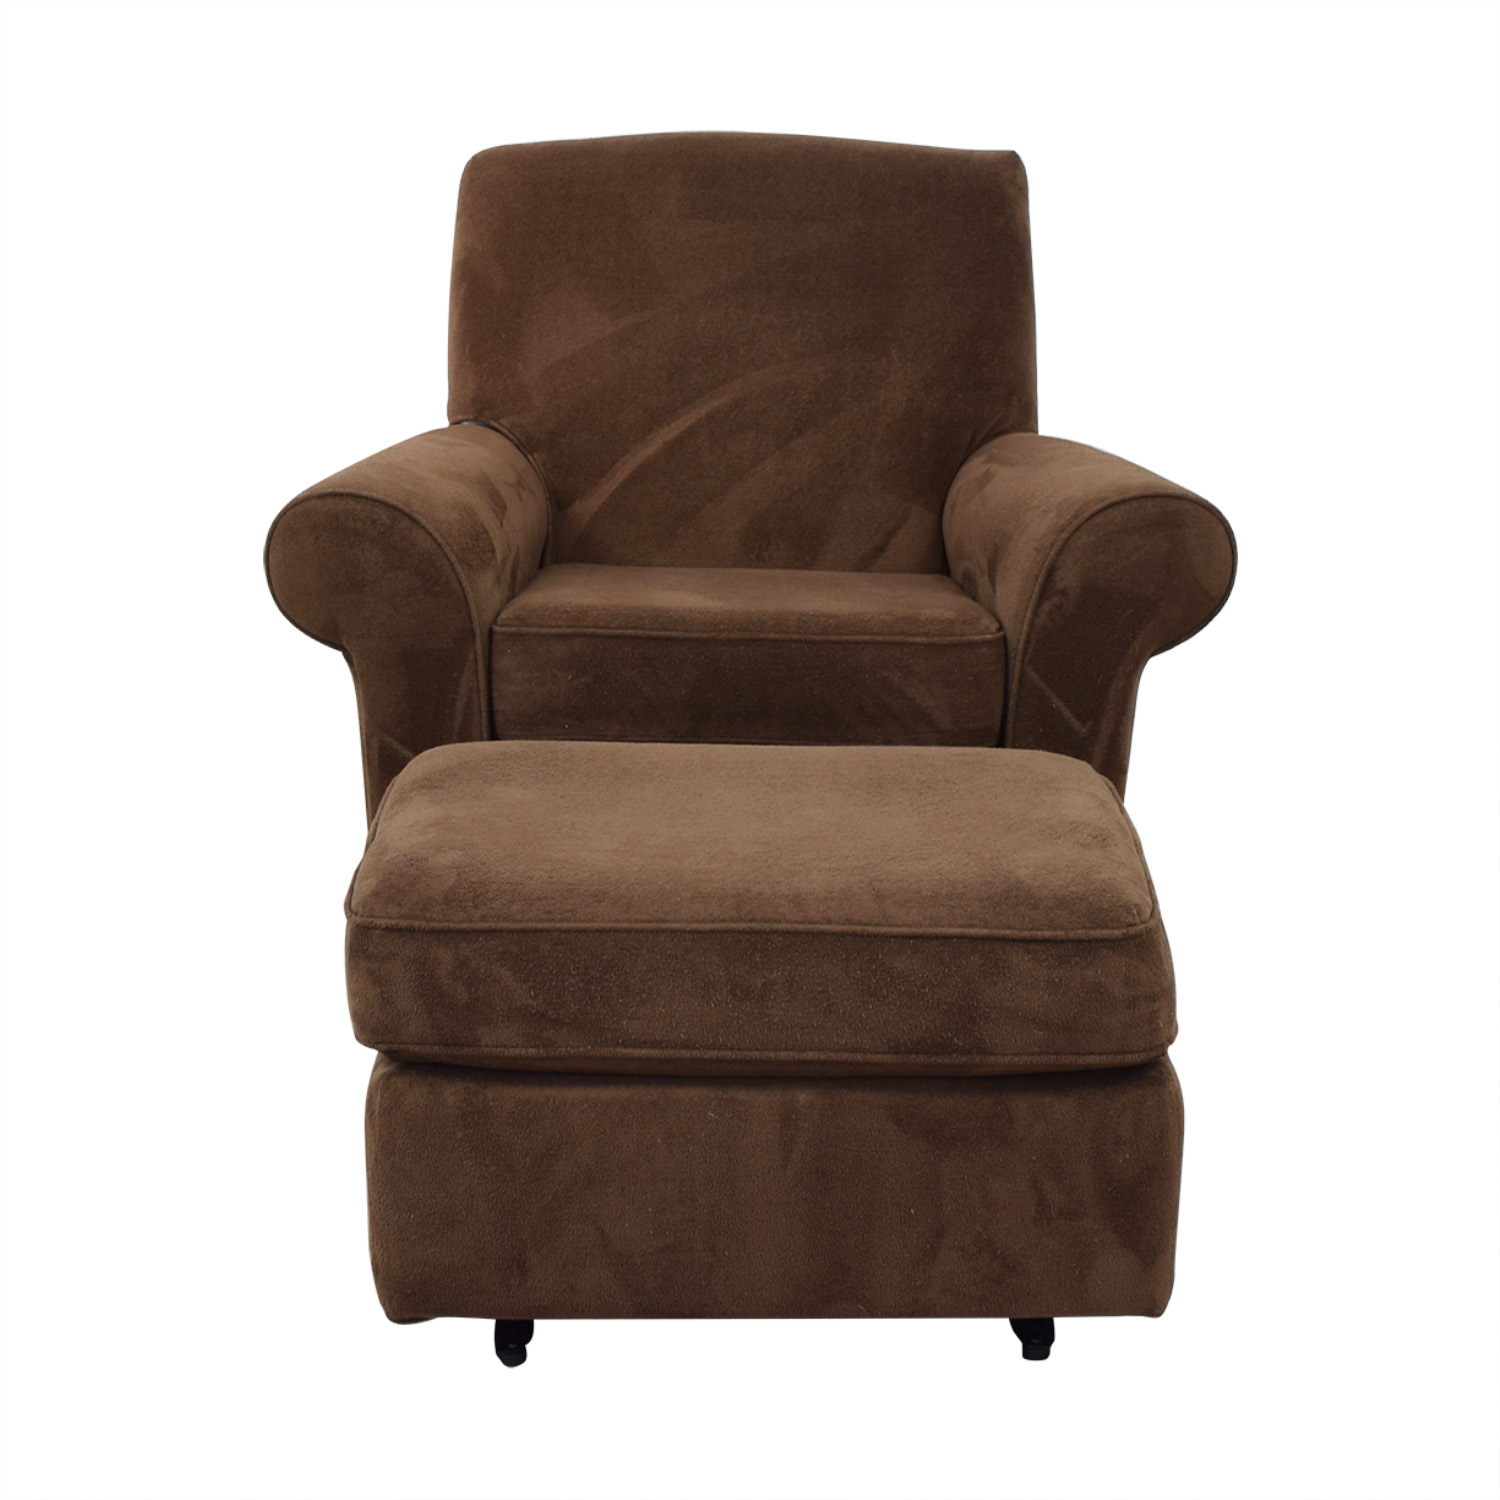 Best Chairs Best Chairs Mandy Swivel Glider and Ottoman second hand